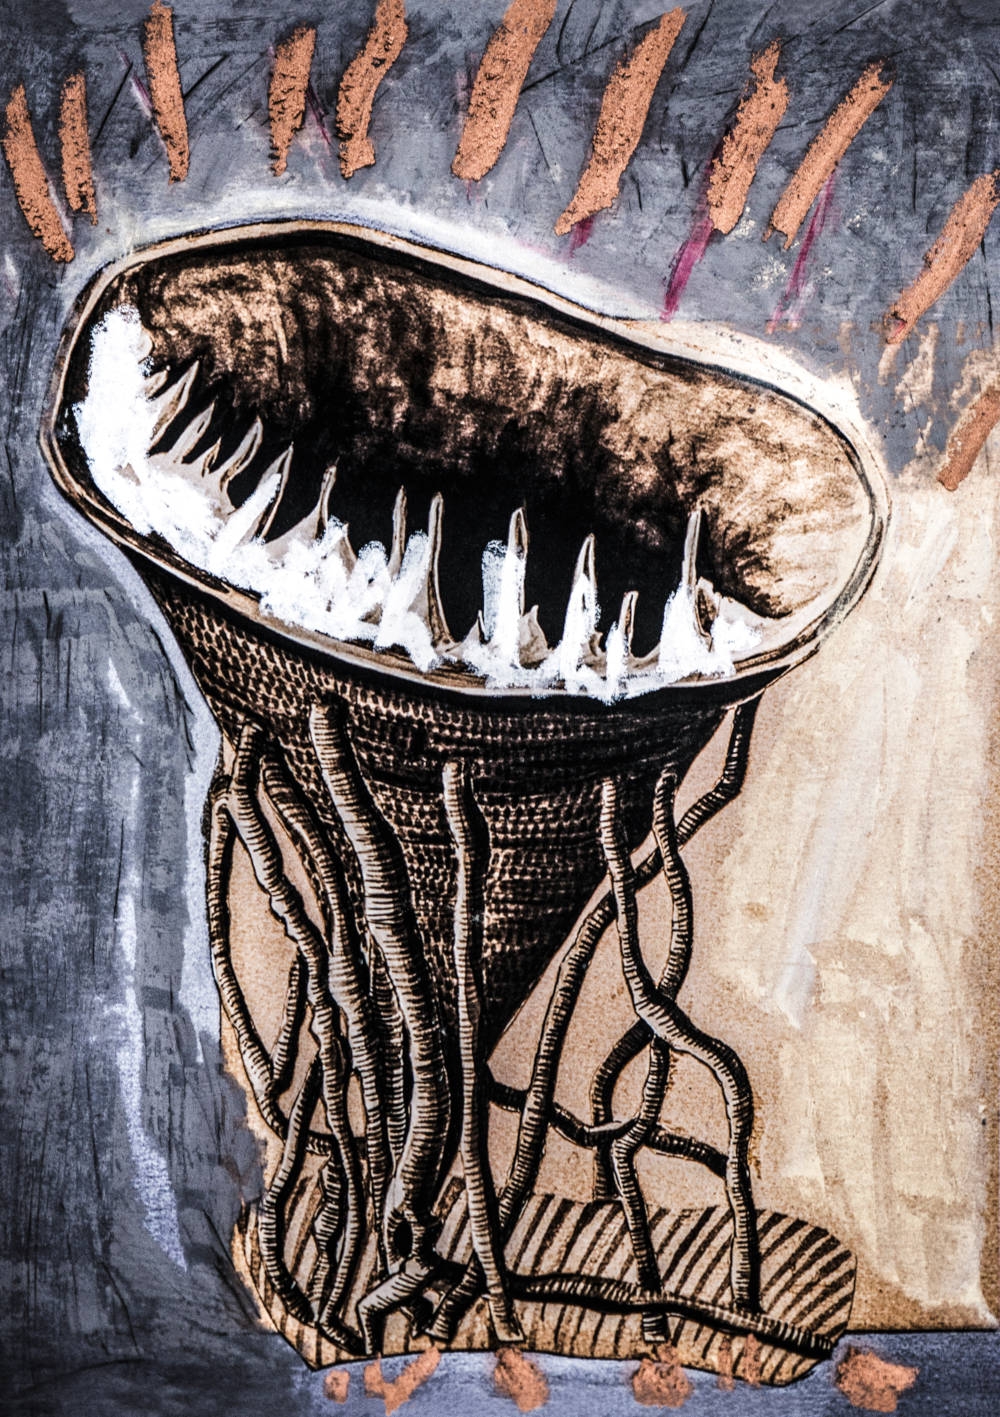 O irrevelável / The unrevealable